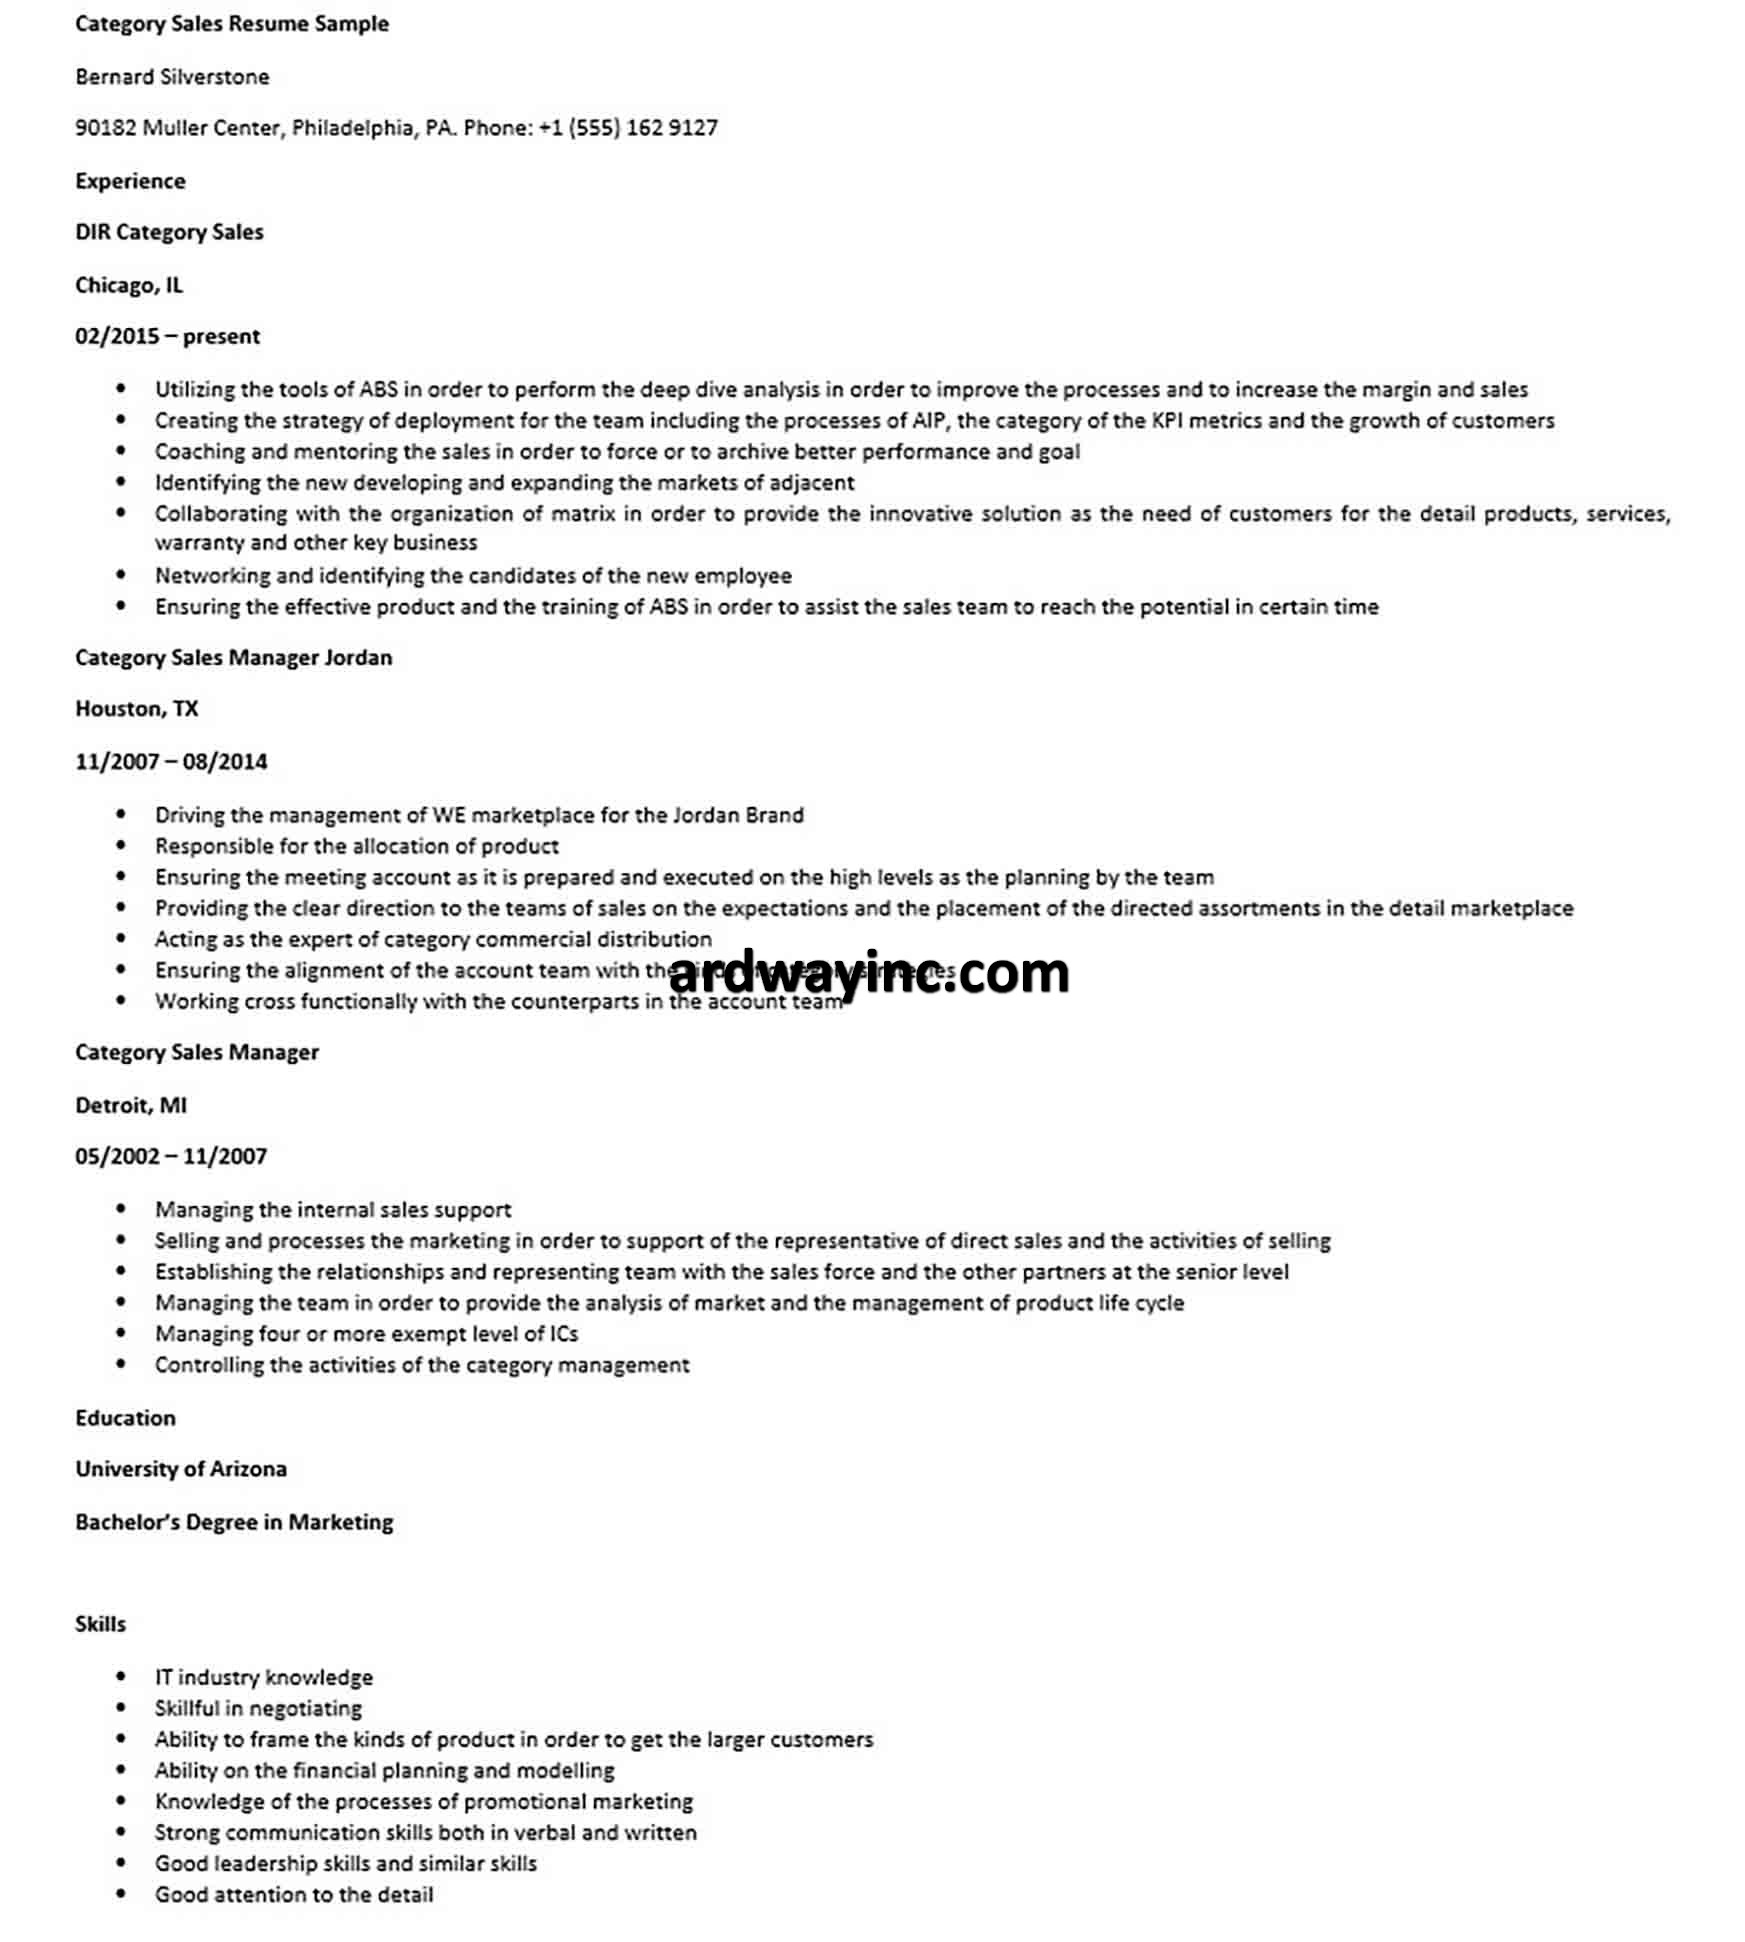 Category Sales Resume Sample